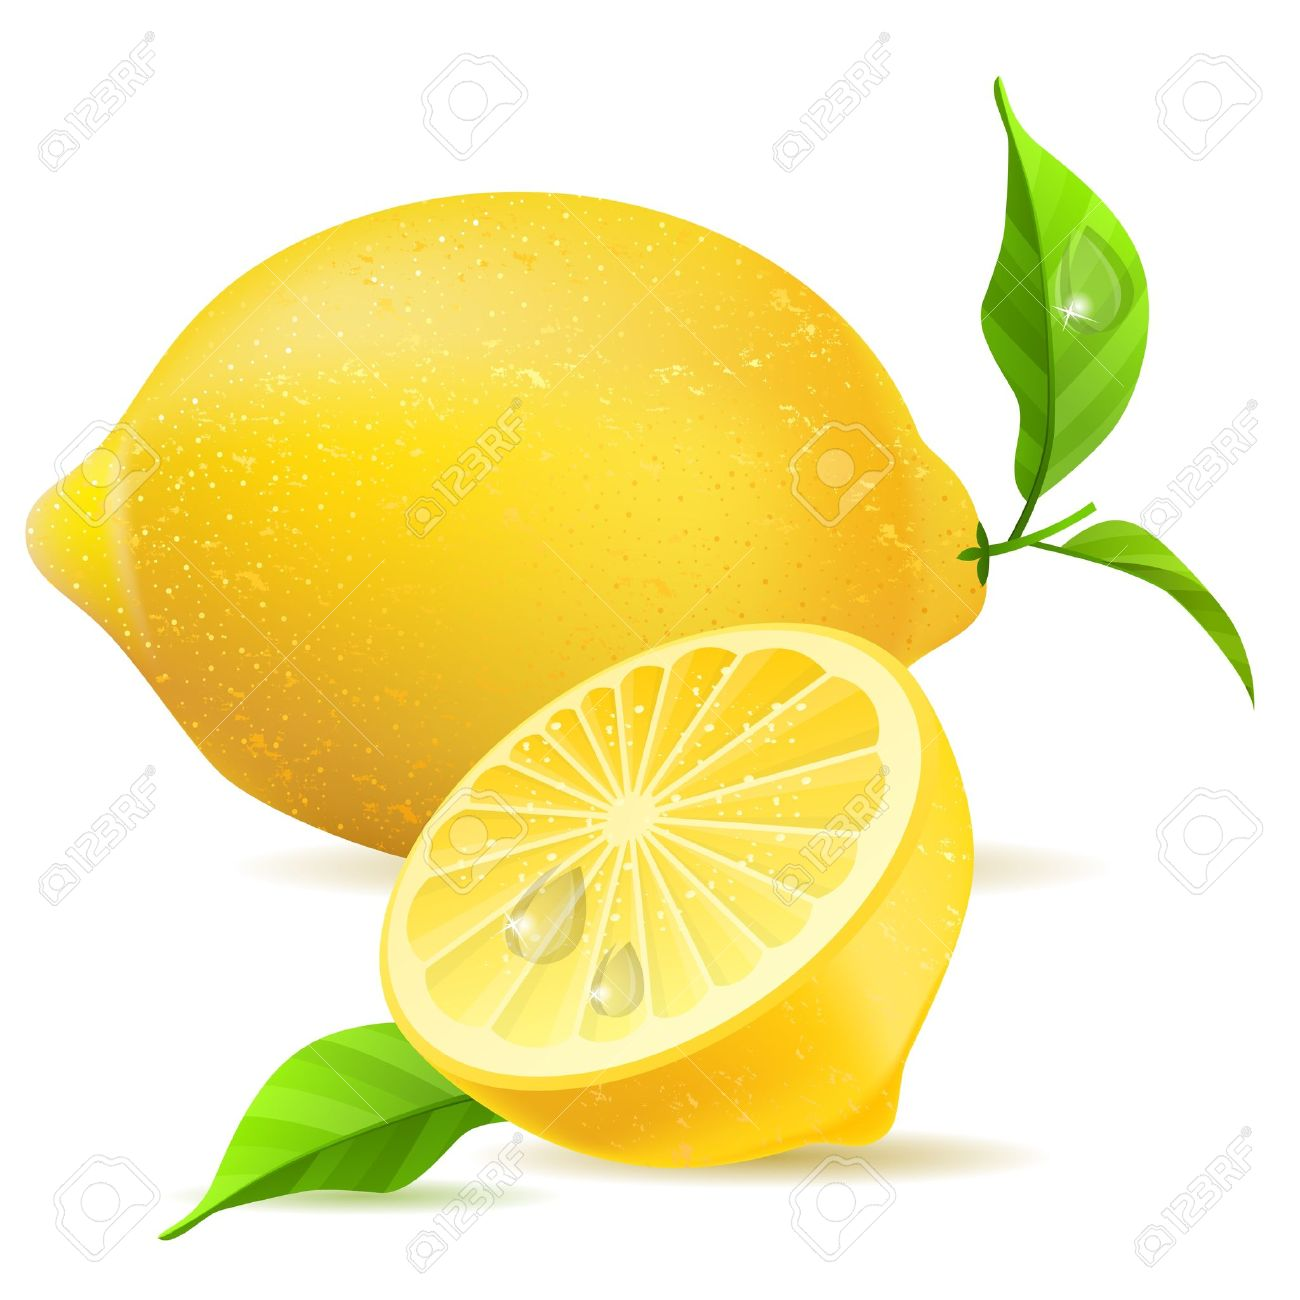 . hdclipartall.com Lemon Clipart 04